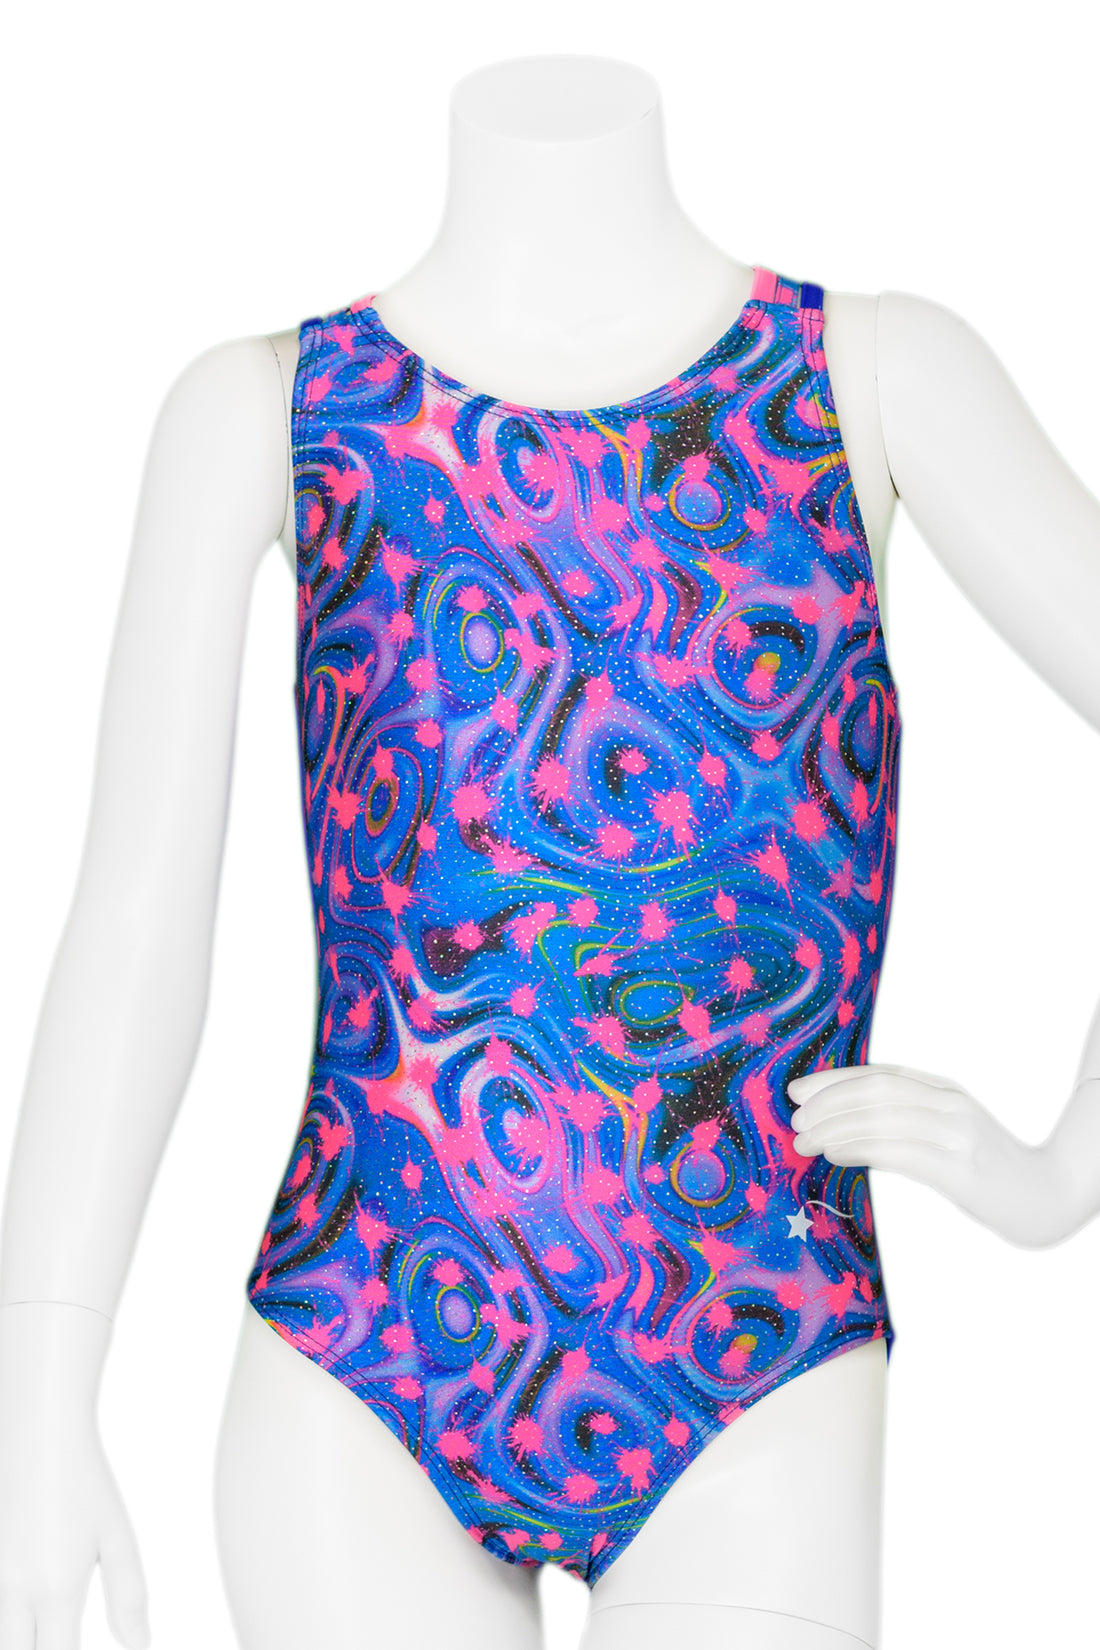 Paint Splat Woven Back Leotard